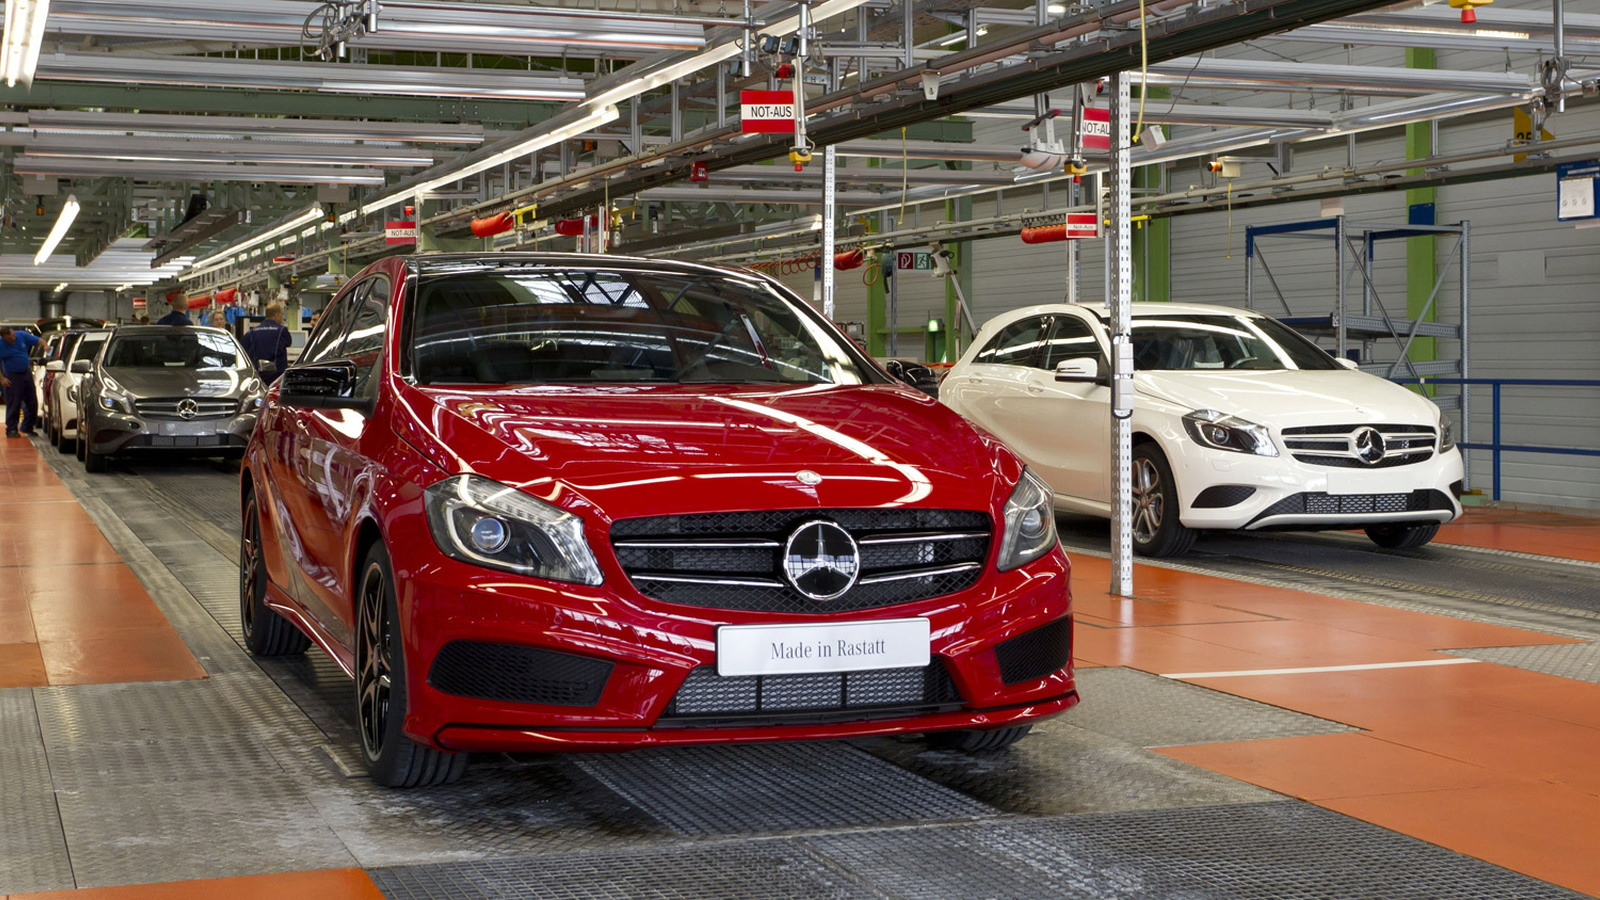 Production of Mercedes-Benz compact cars